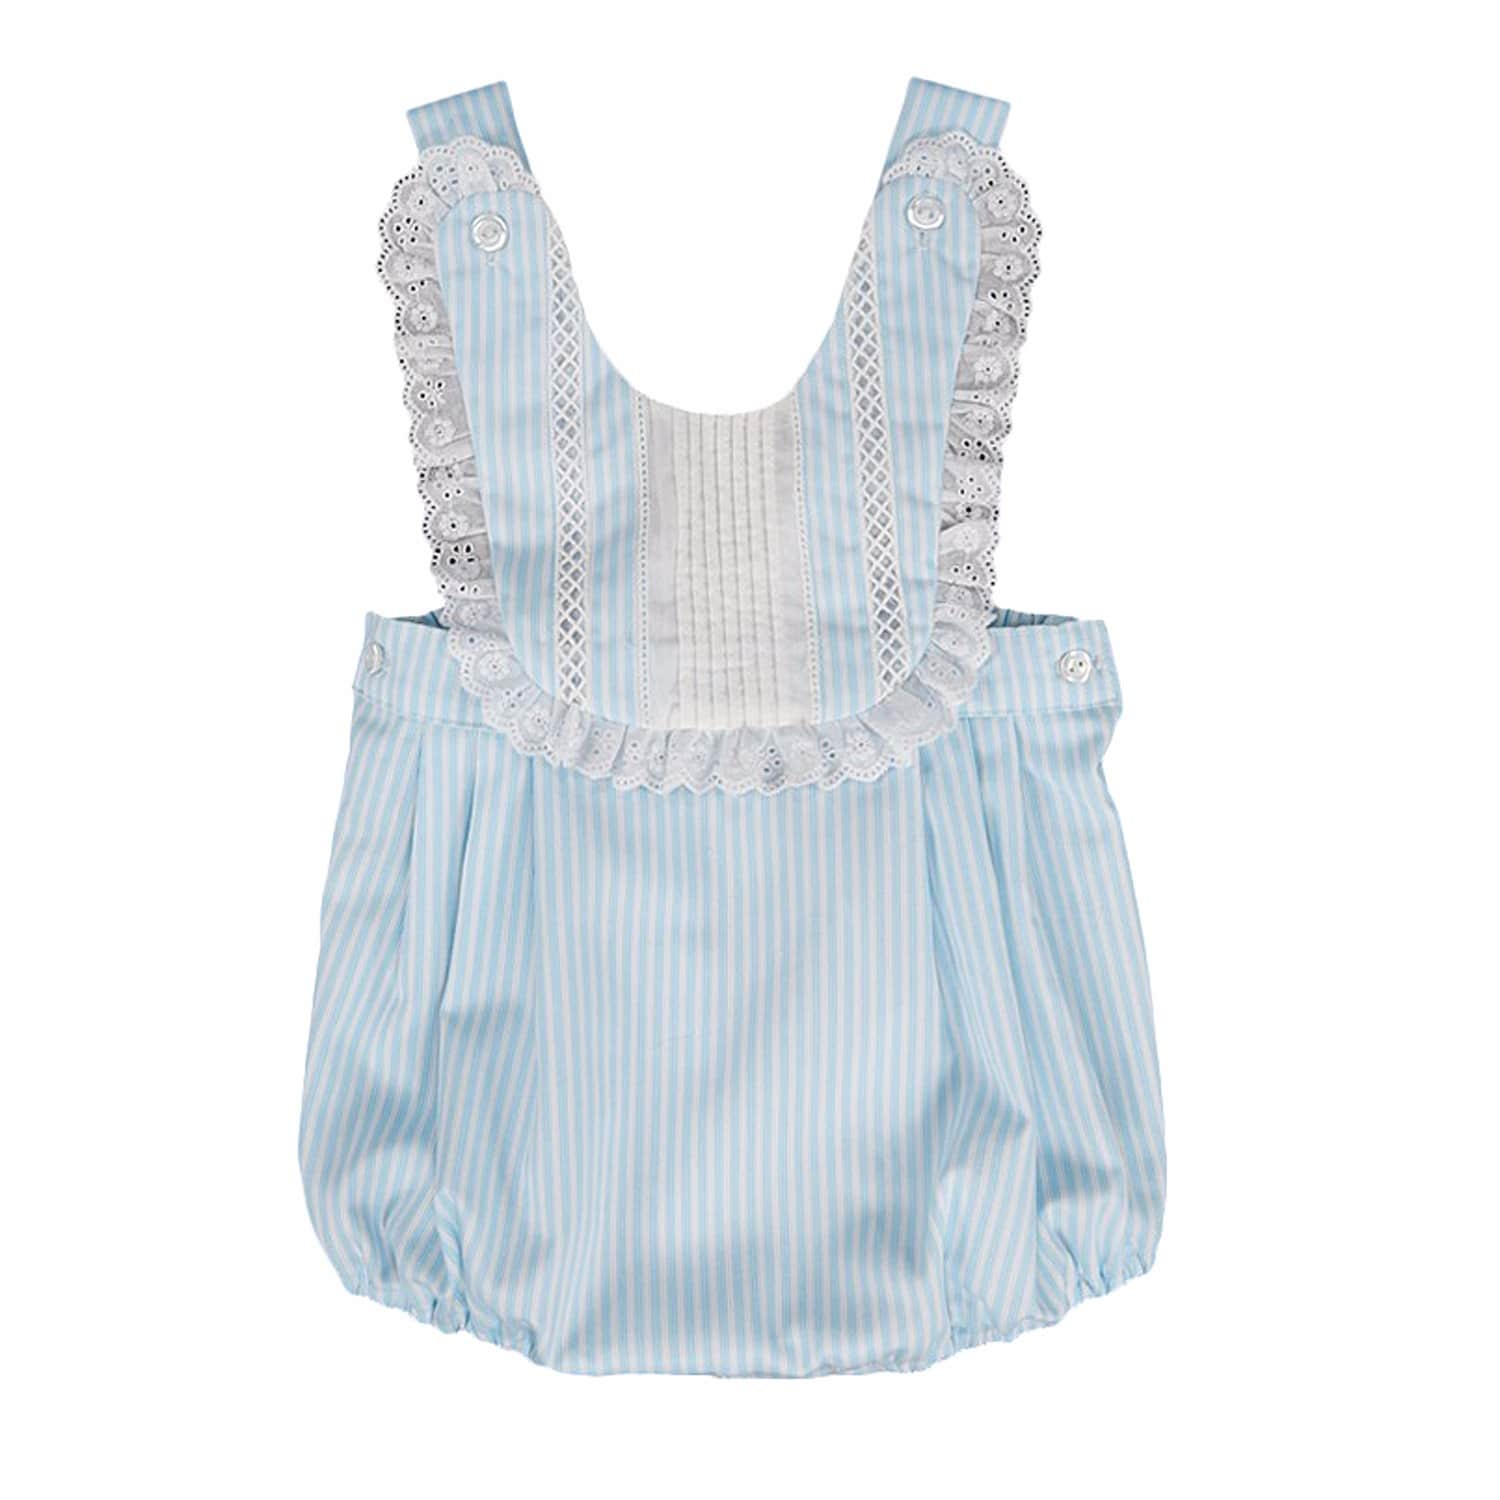 Castelln Blue Lace Medley Baby Boy Romper Spanish Clothing In White Image